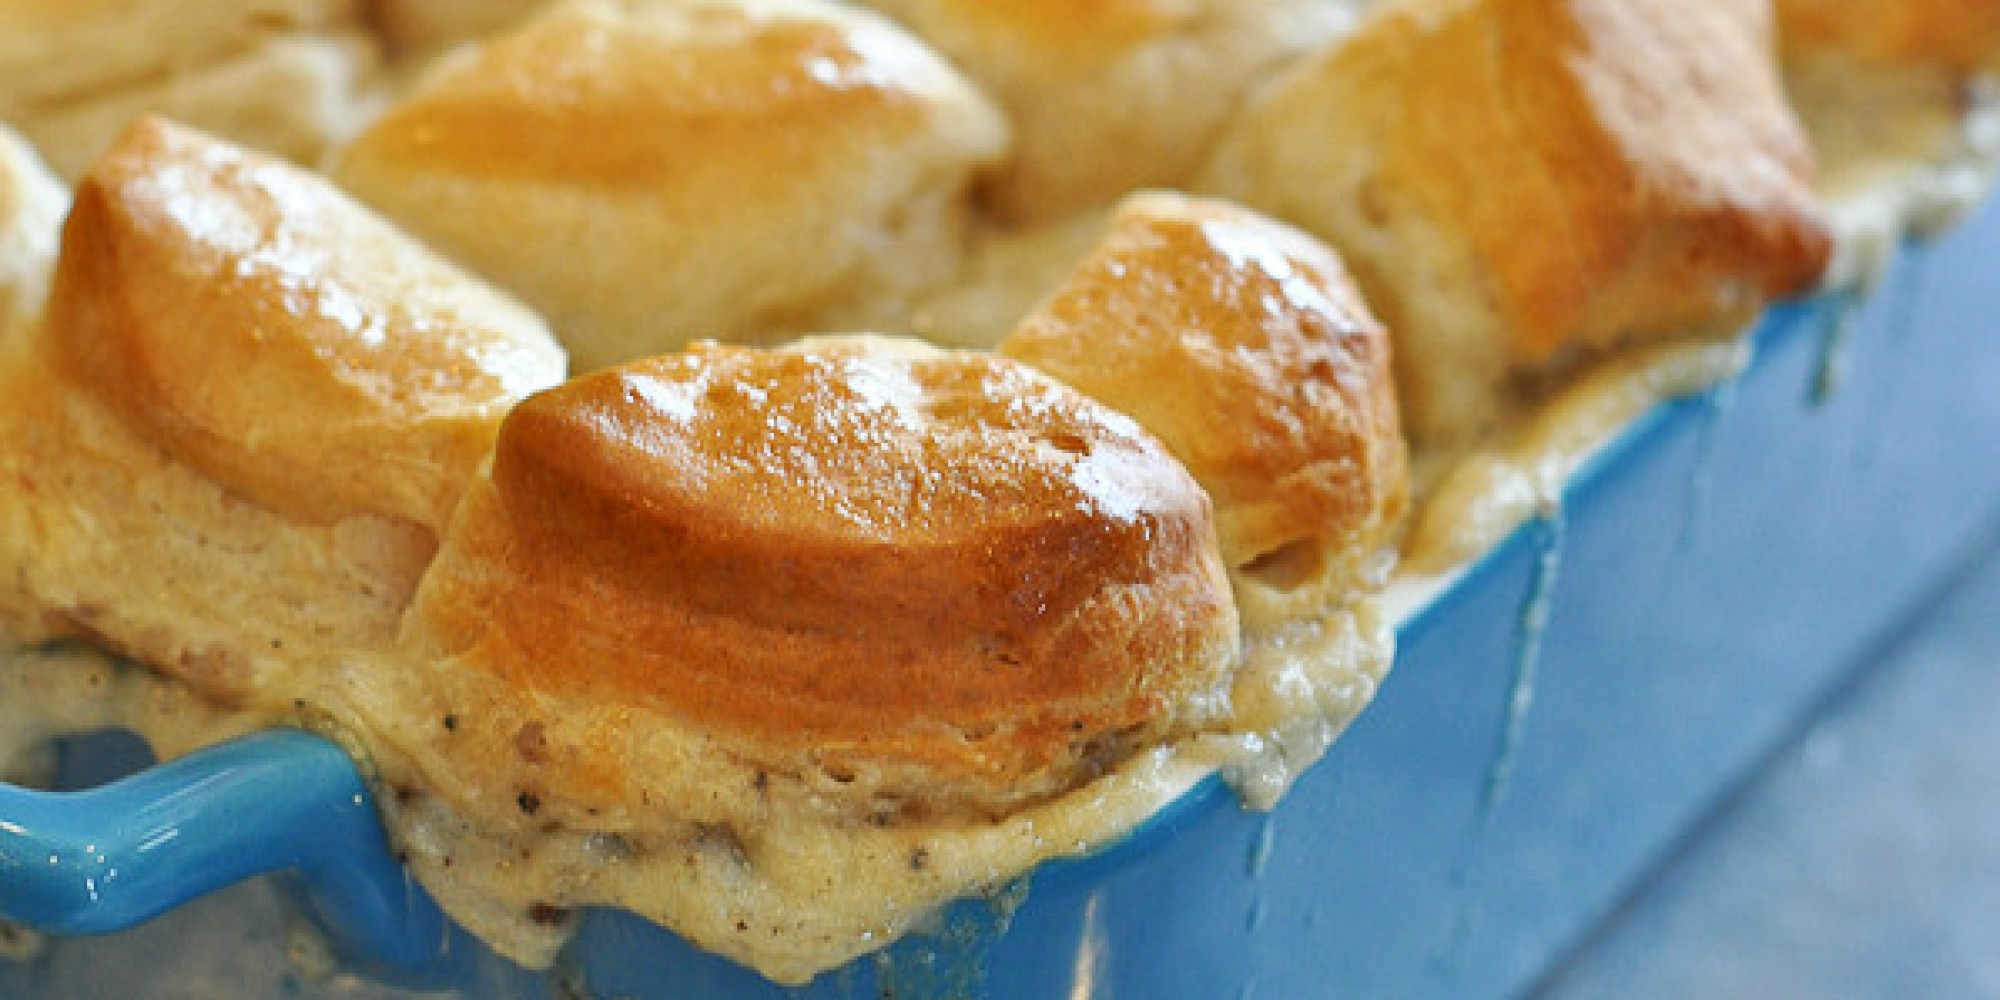 Biscuits And Gravy Join Forces To Make An Incredible Casserole (RECIPE ...